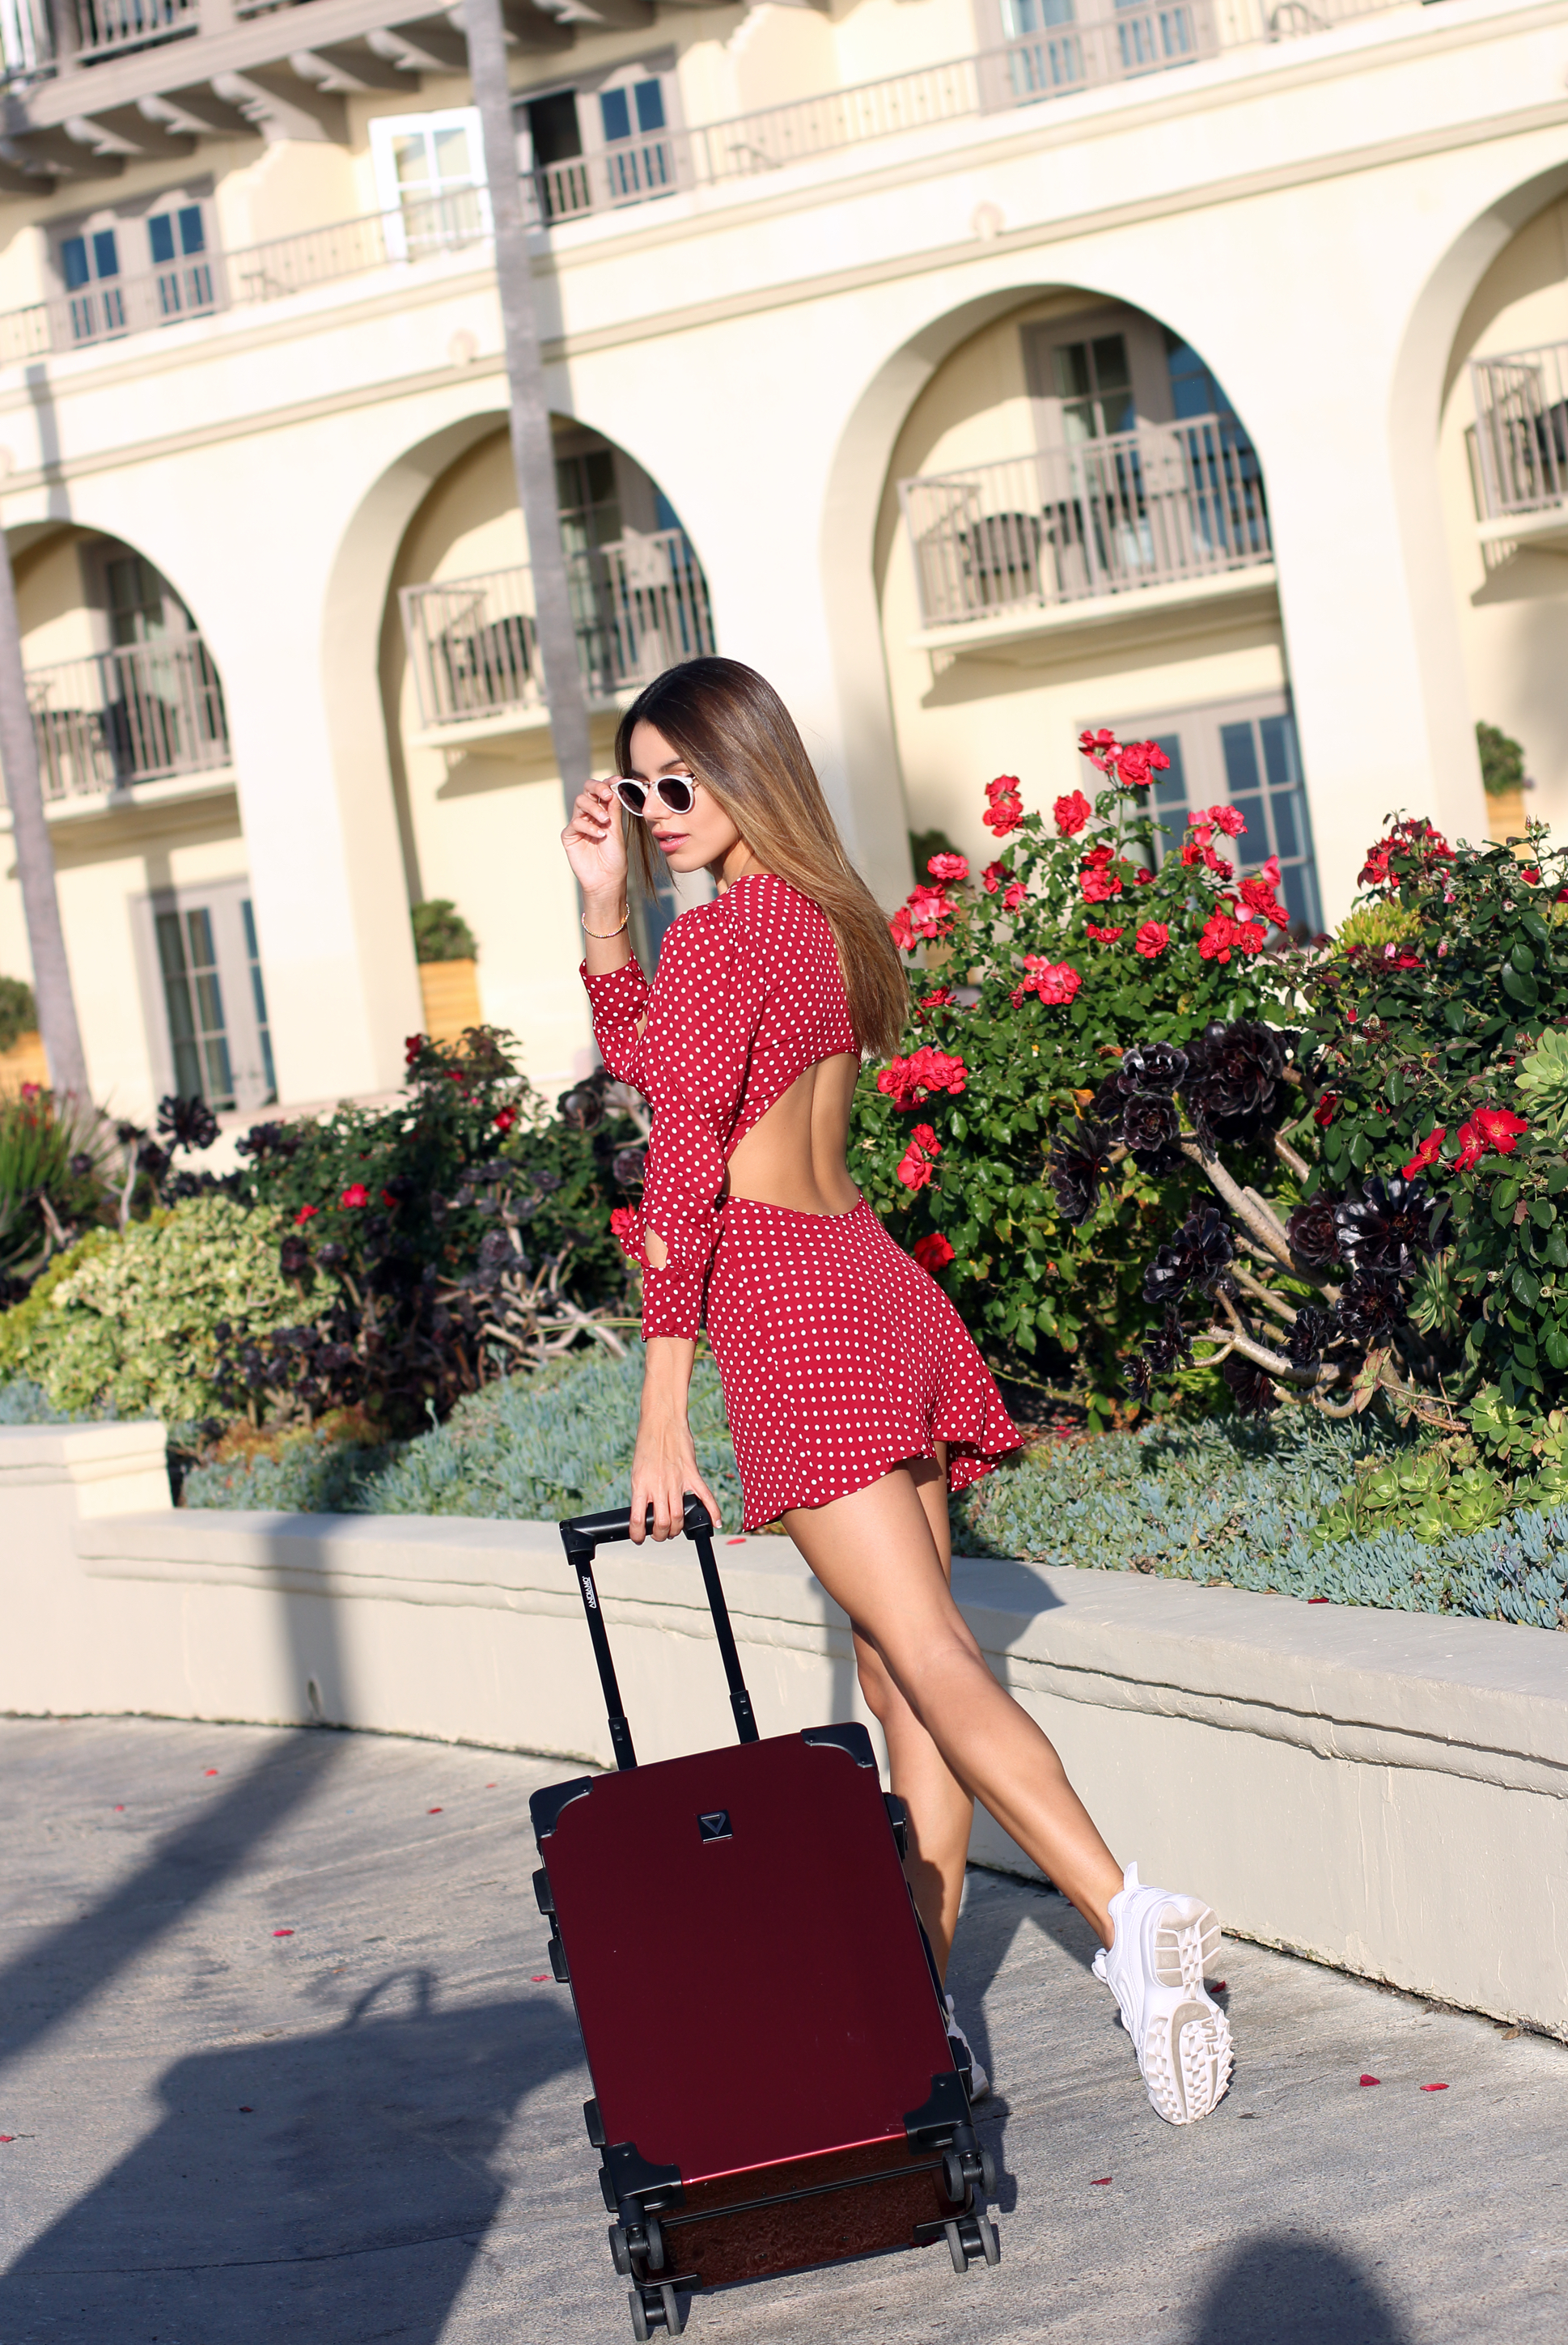 Overnight Staycation at The Ritz-Carlton, Laguna Niguel with Andiamo Luggage -